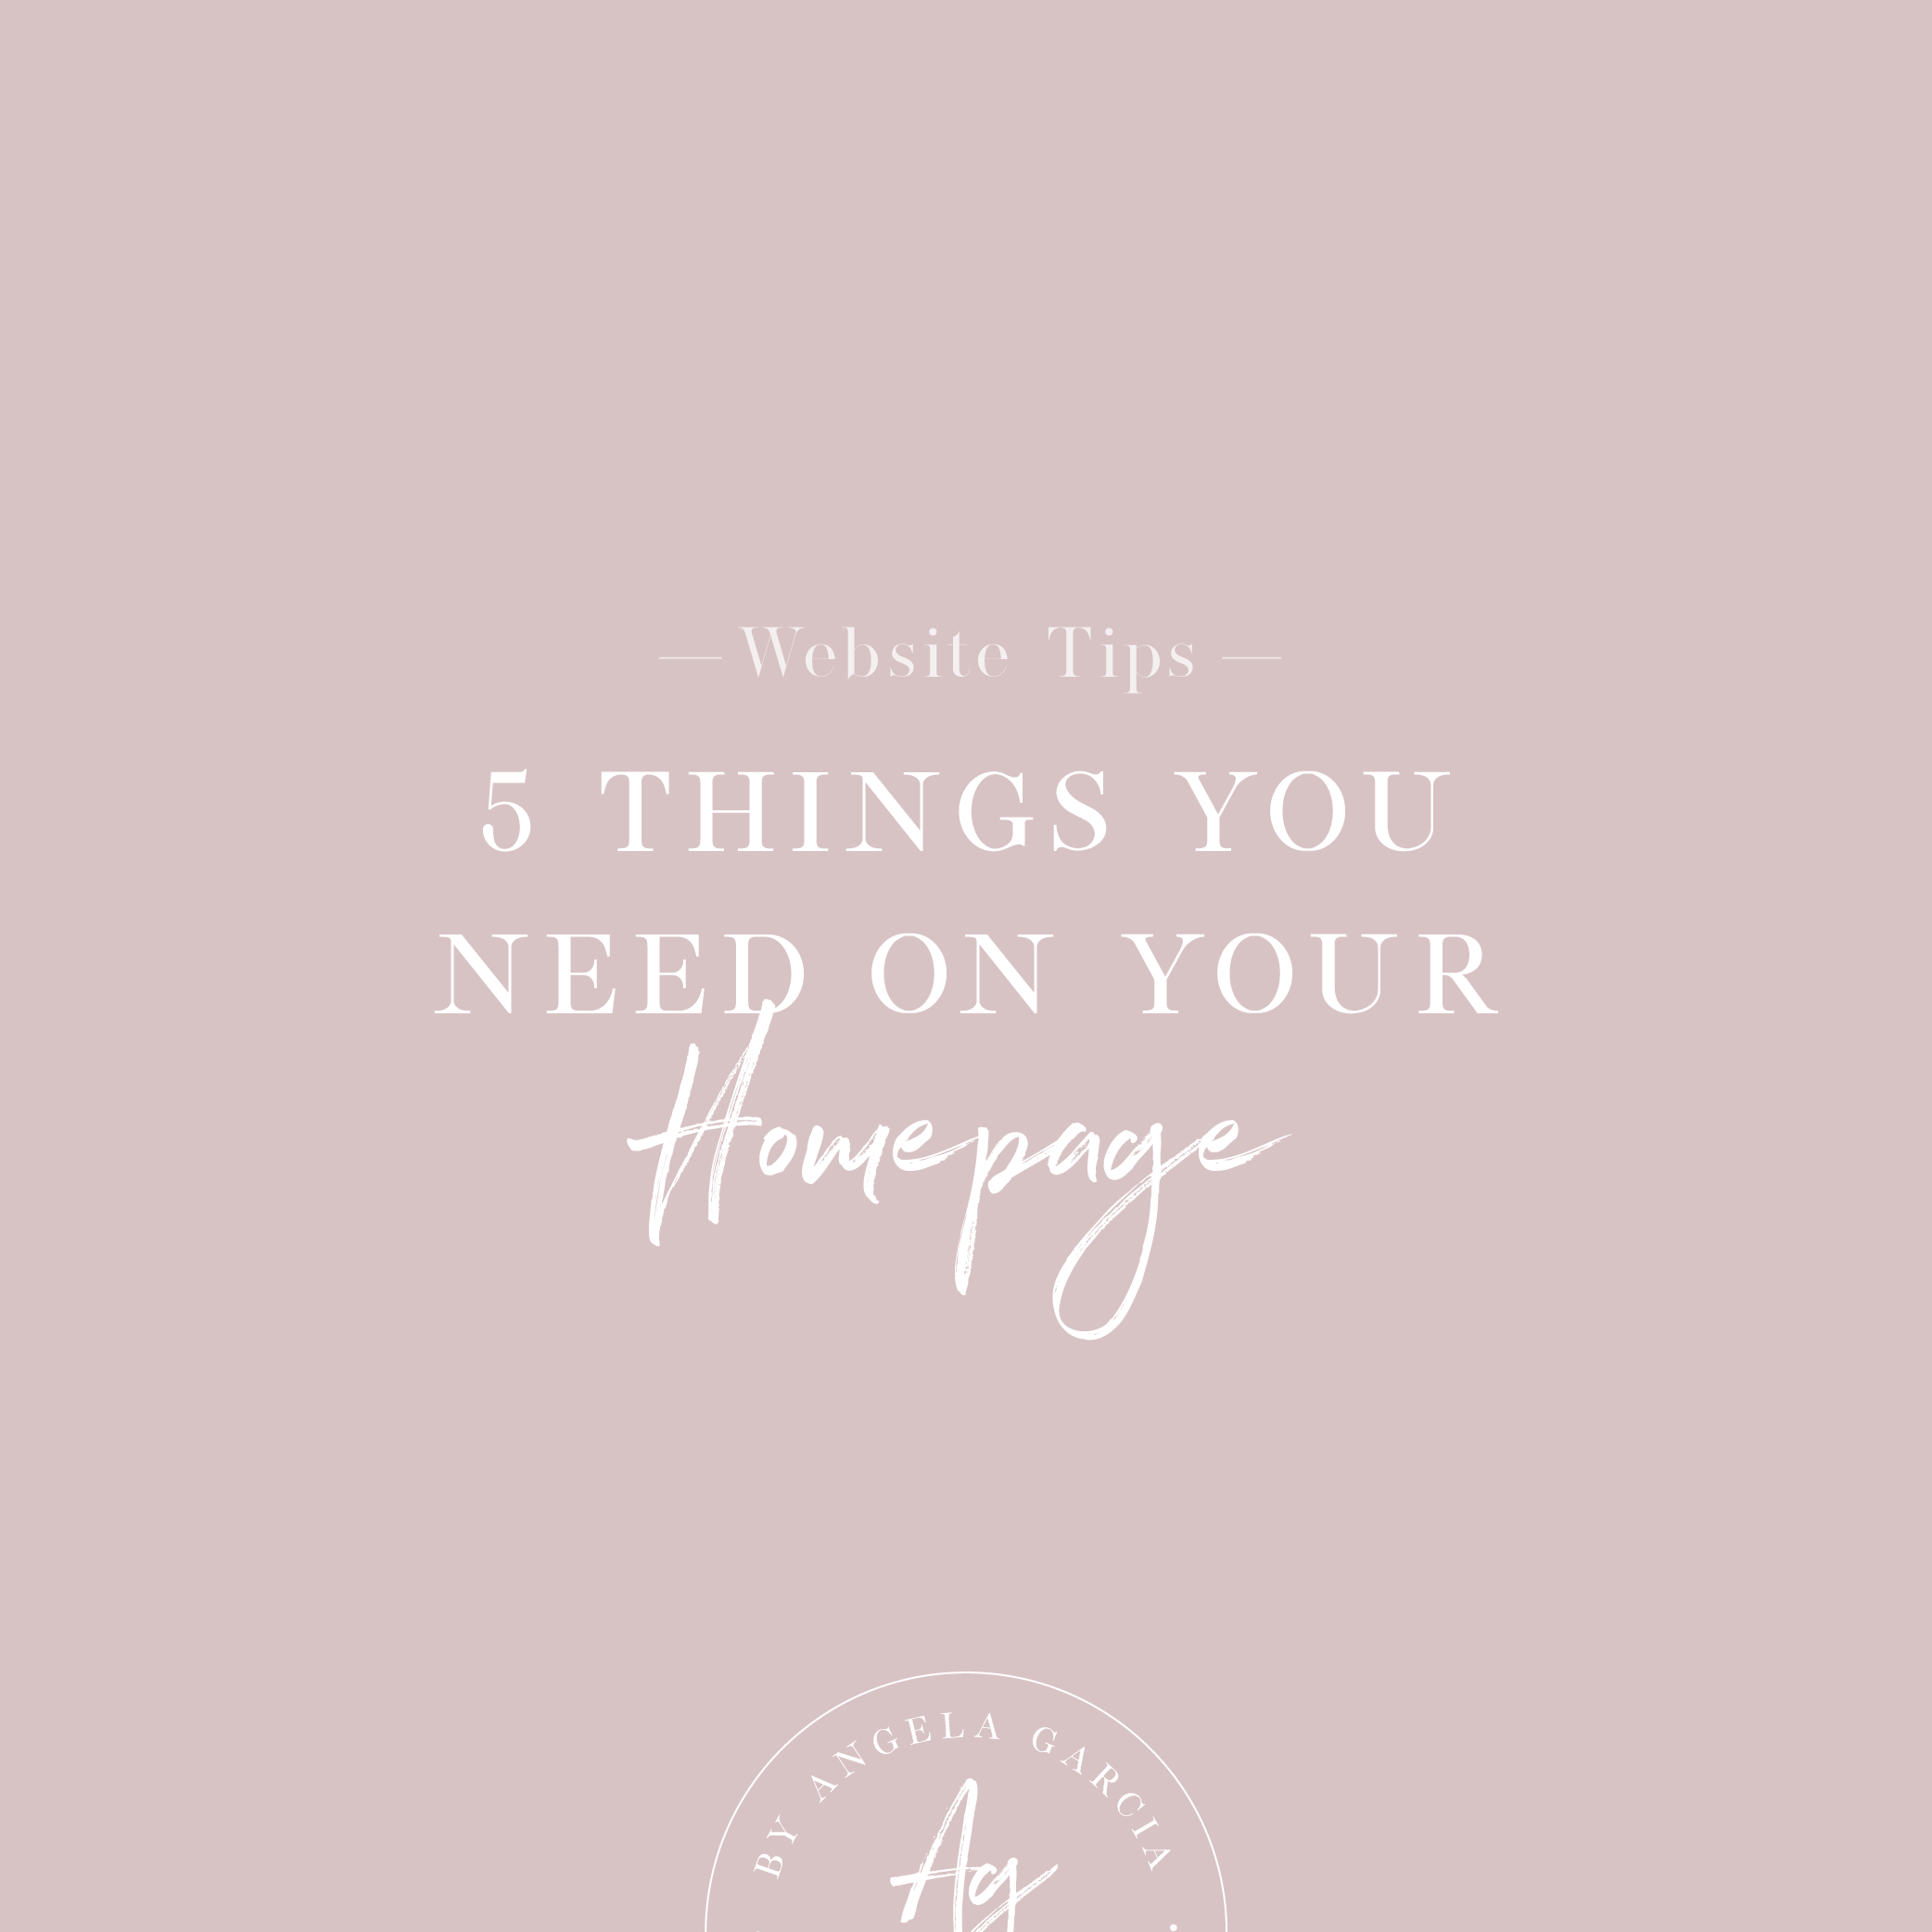 5 Things You Need on your Homepage